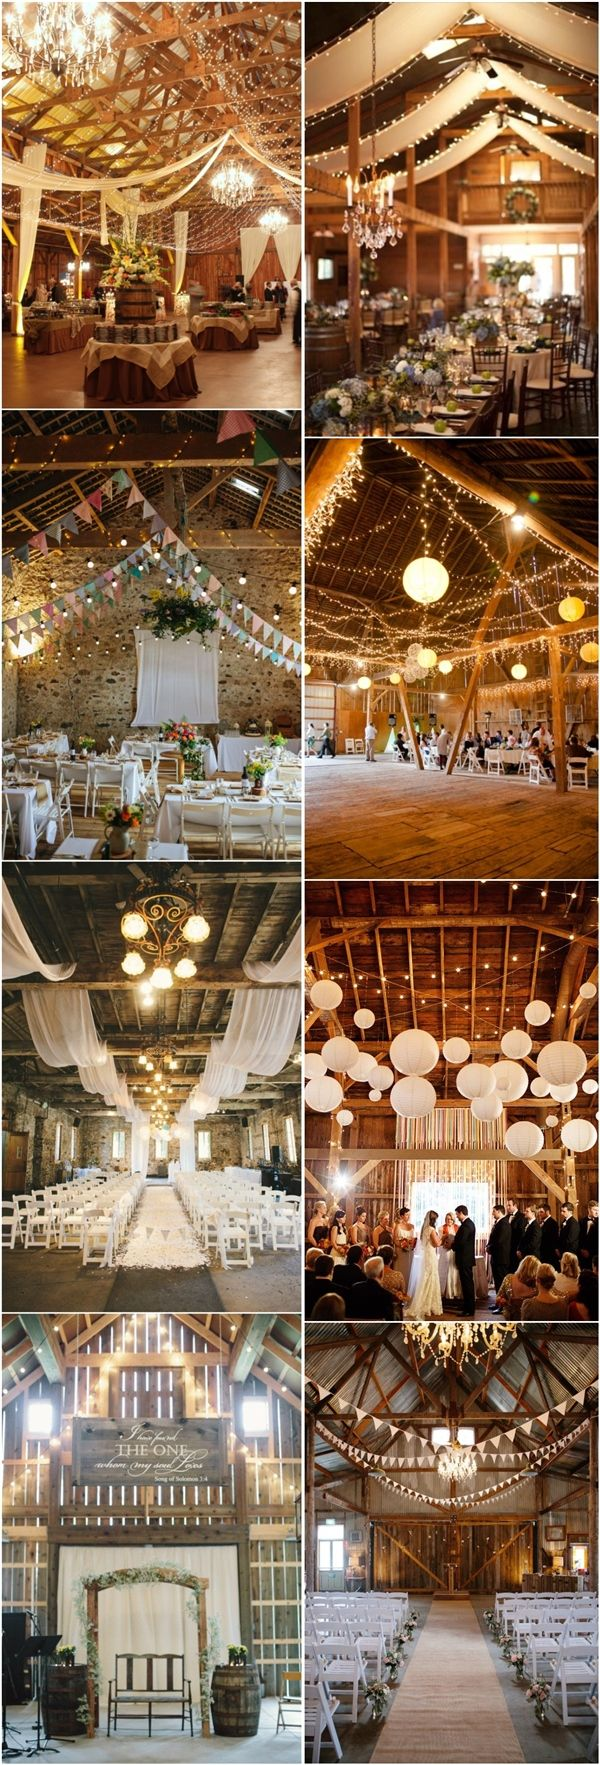 Wedding reception decoration ideas with lights   Romantic Indoor Barn Wedding Decor Ideas with Lights  Country